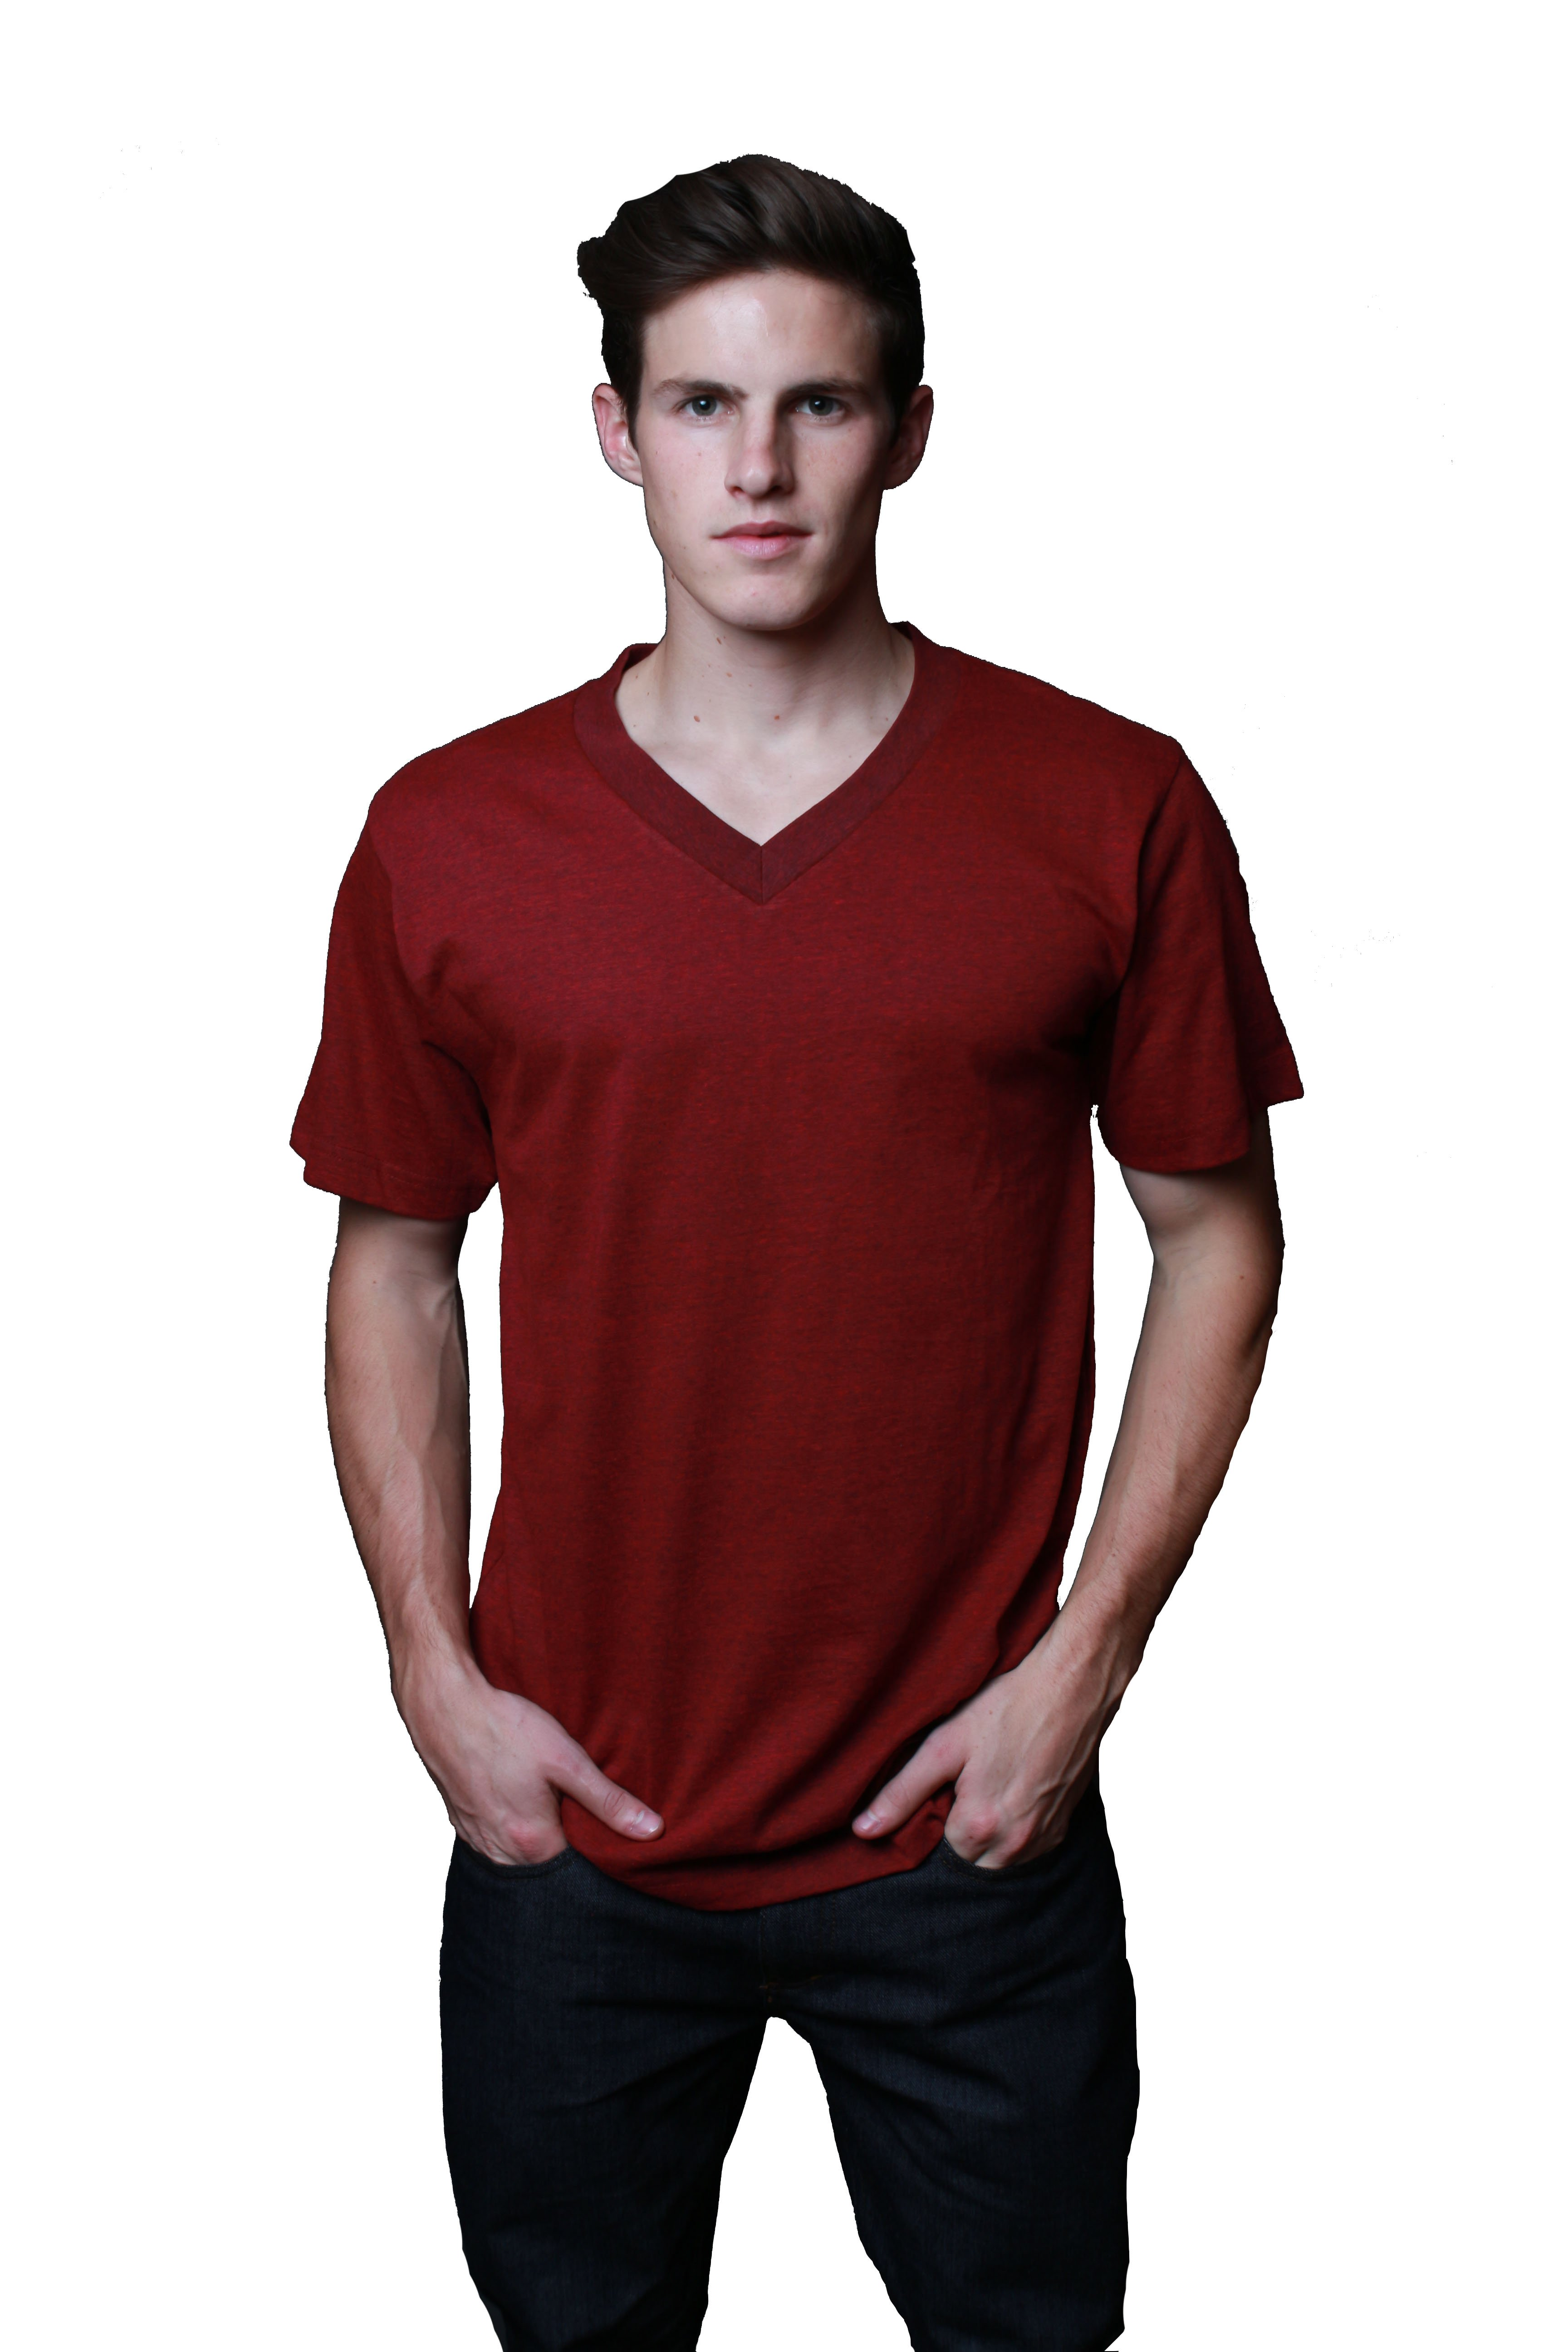 529ab99d Men's Premium 32-Single V-Neck T-Shirt - MTSV13156 - A.M.S